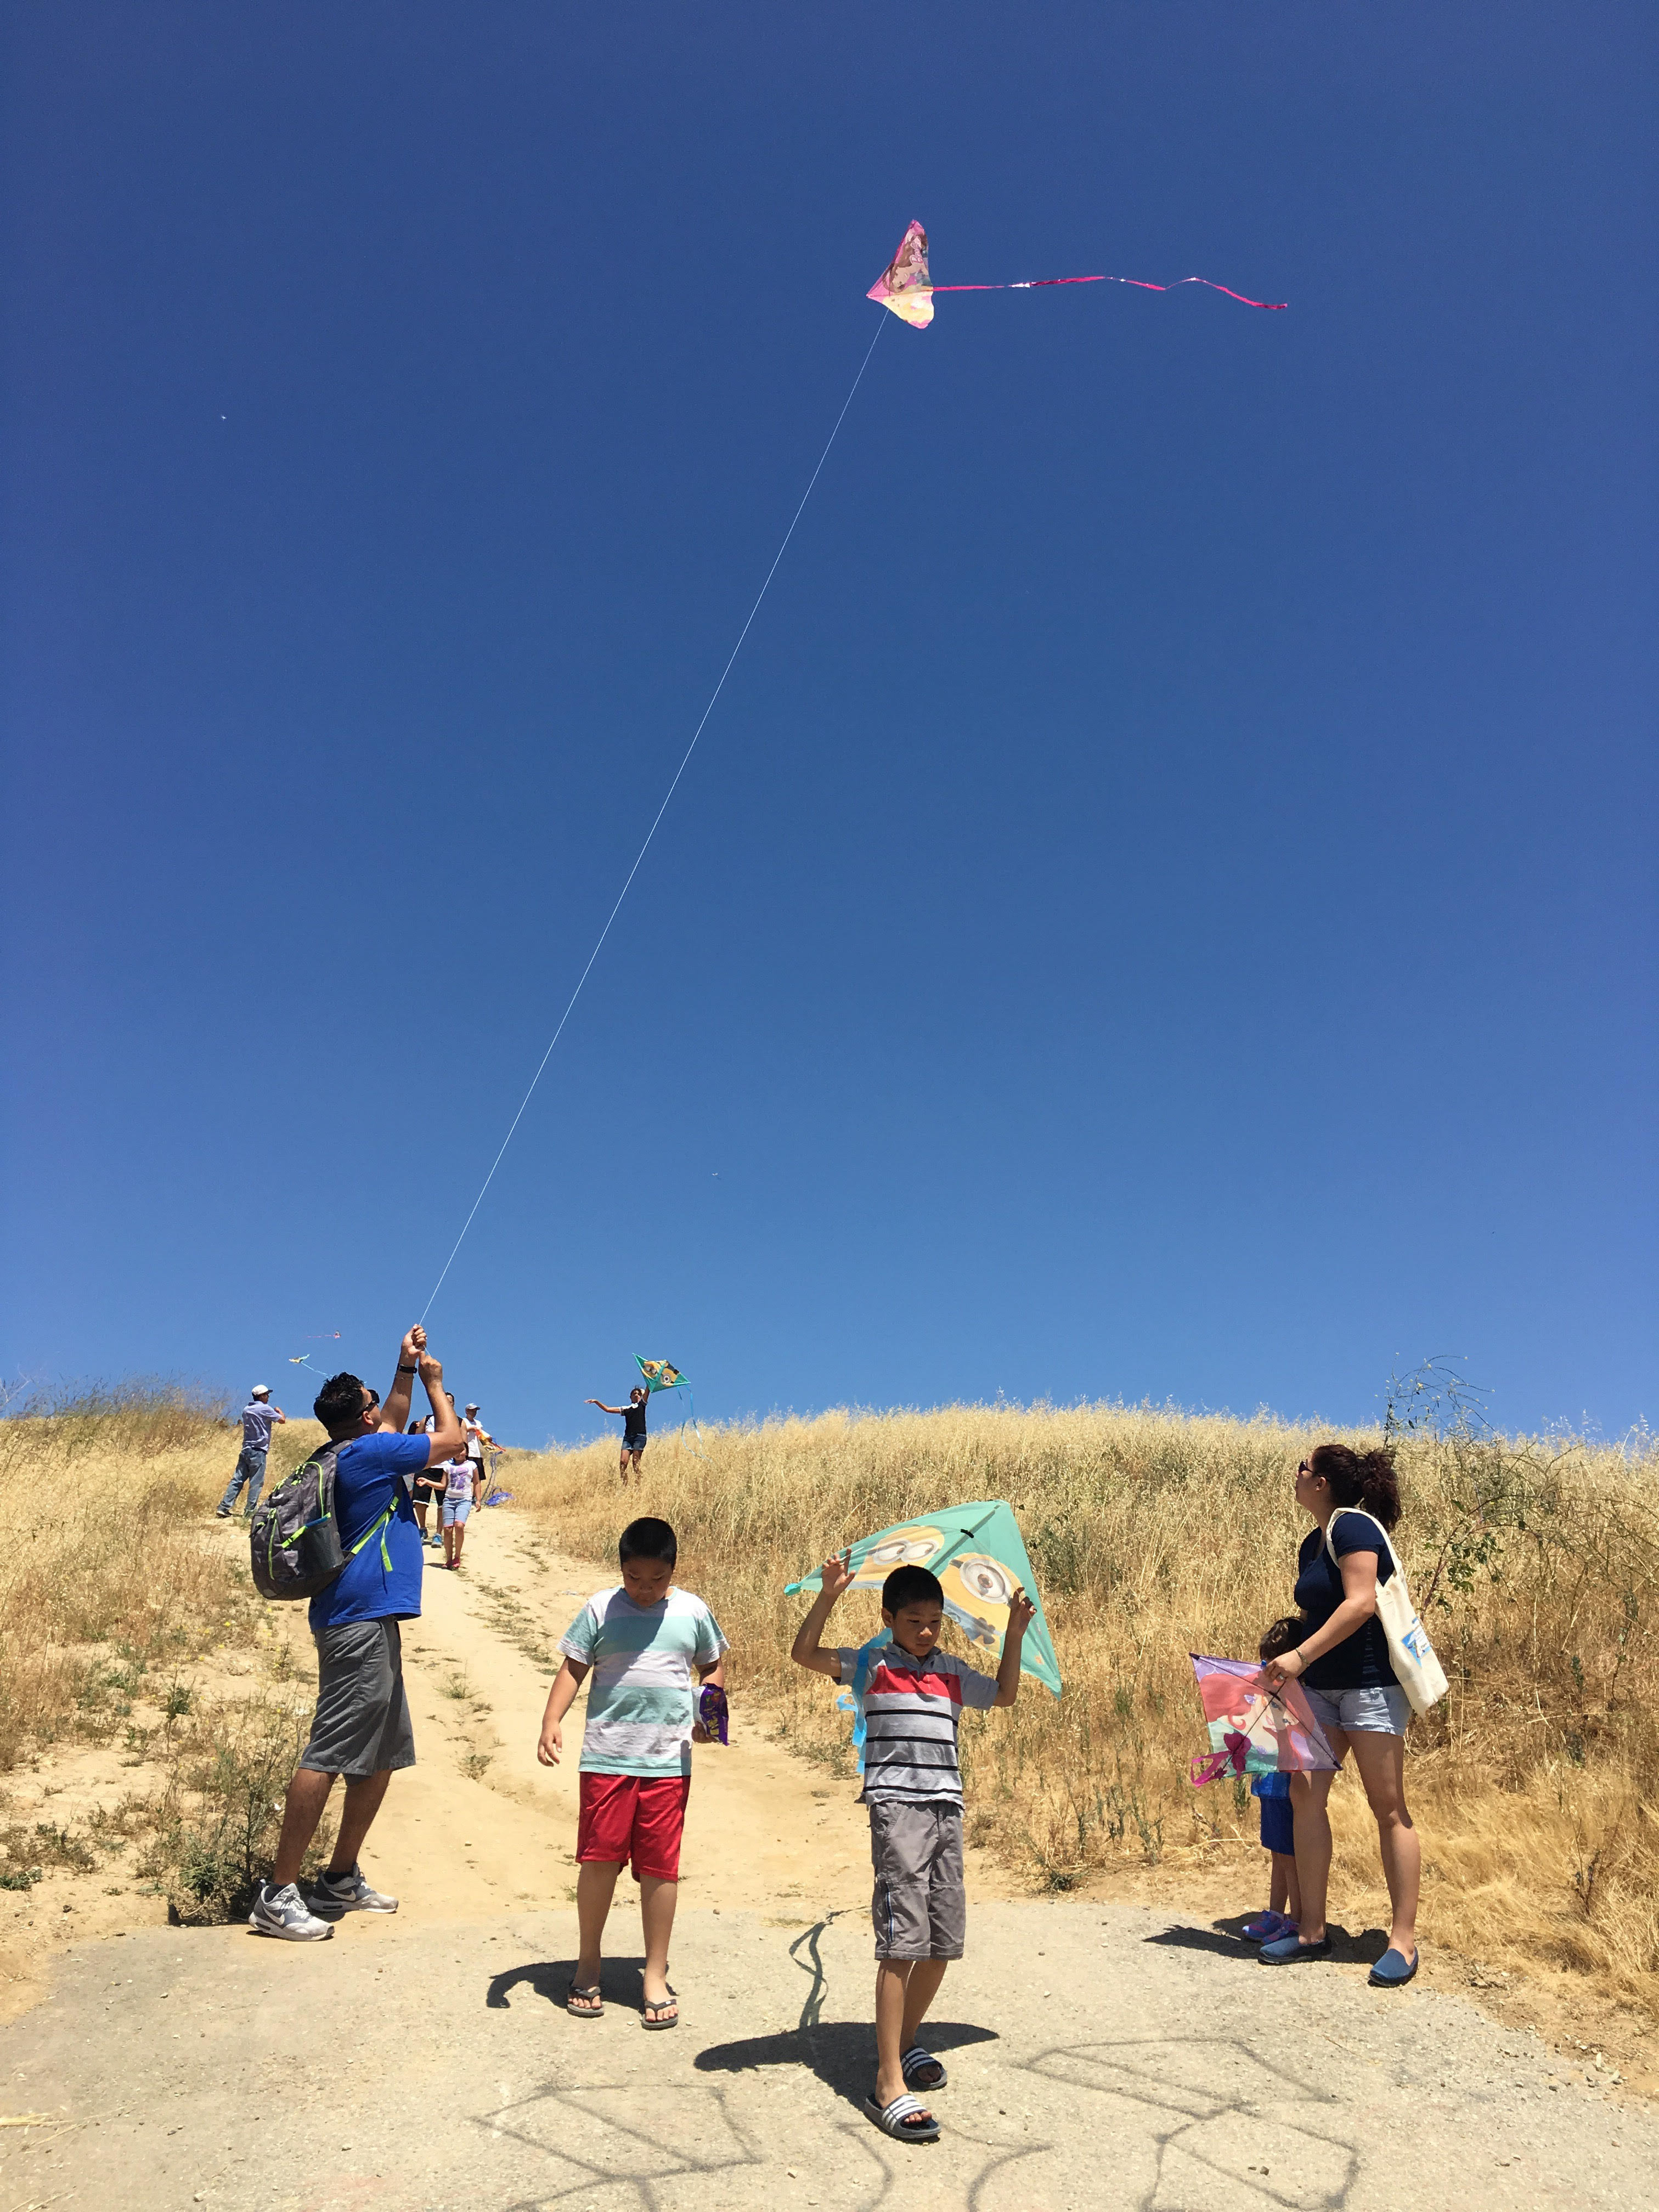 7th_Annual_Kite_Fest.jpg